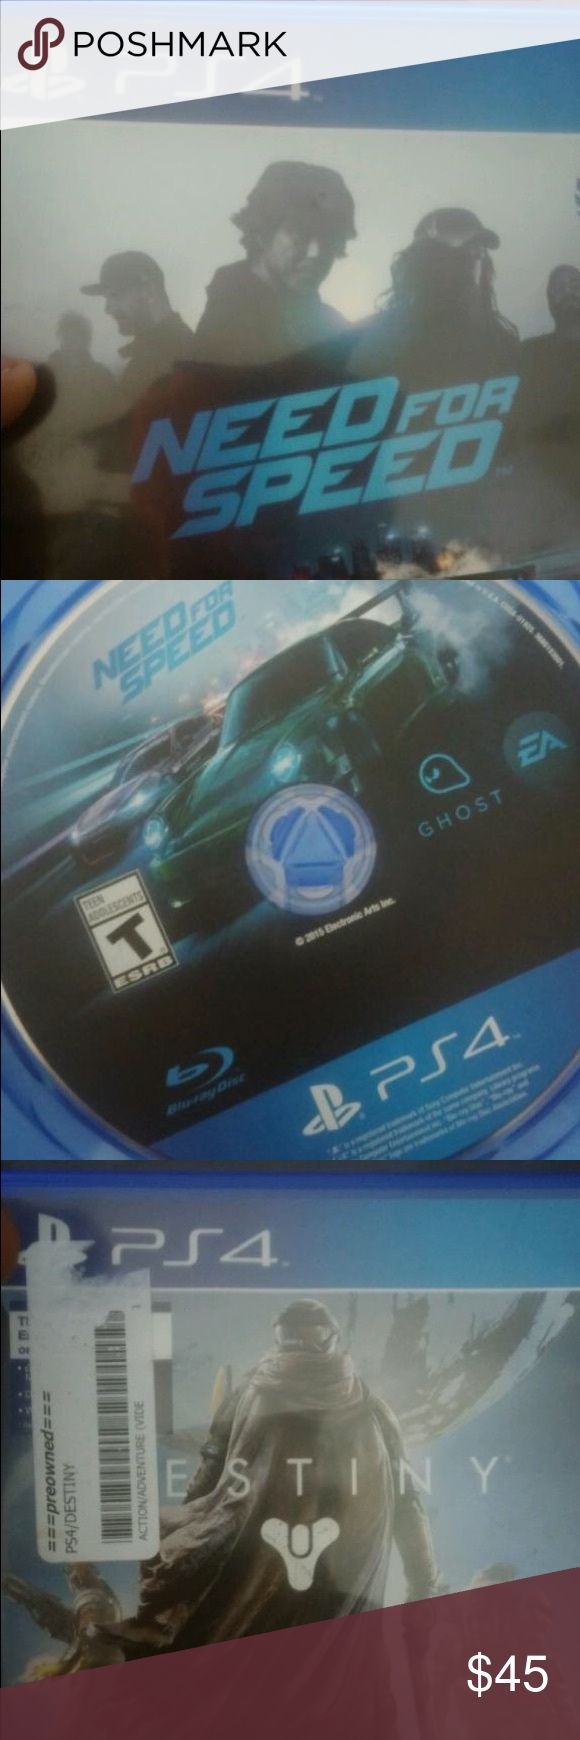 Need for speed and destiny ps4 game Need for speed ps4 game and Destiny . NO SCRATCHES! Like new ! ps4 Other